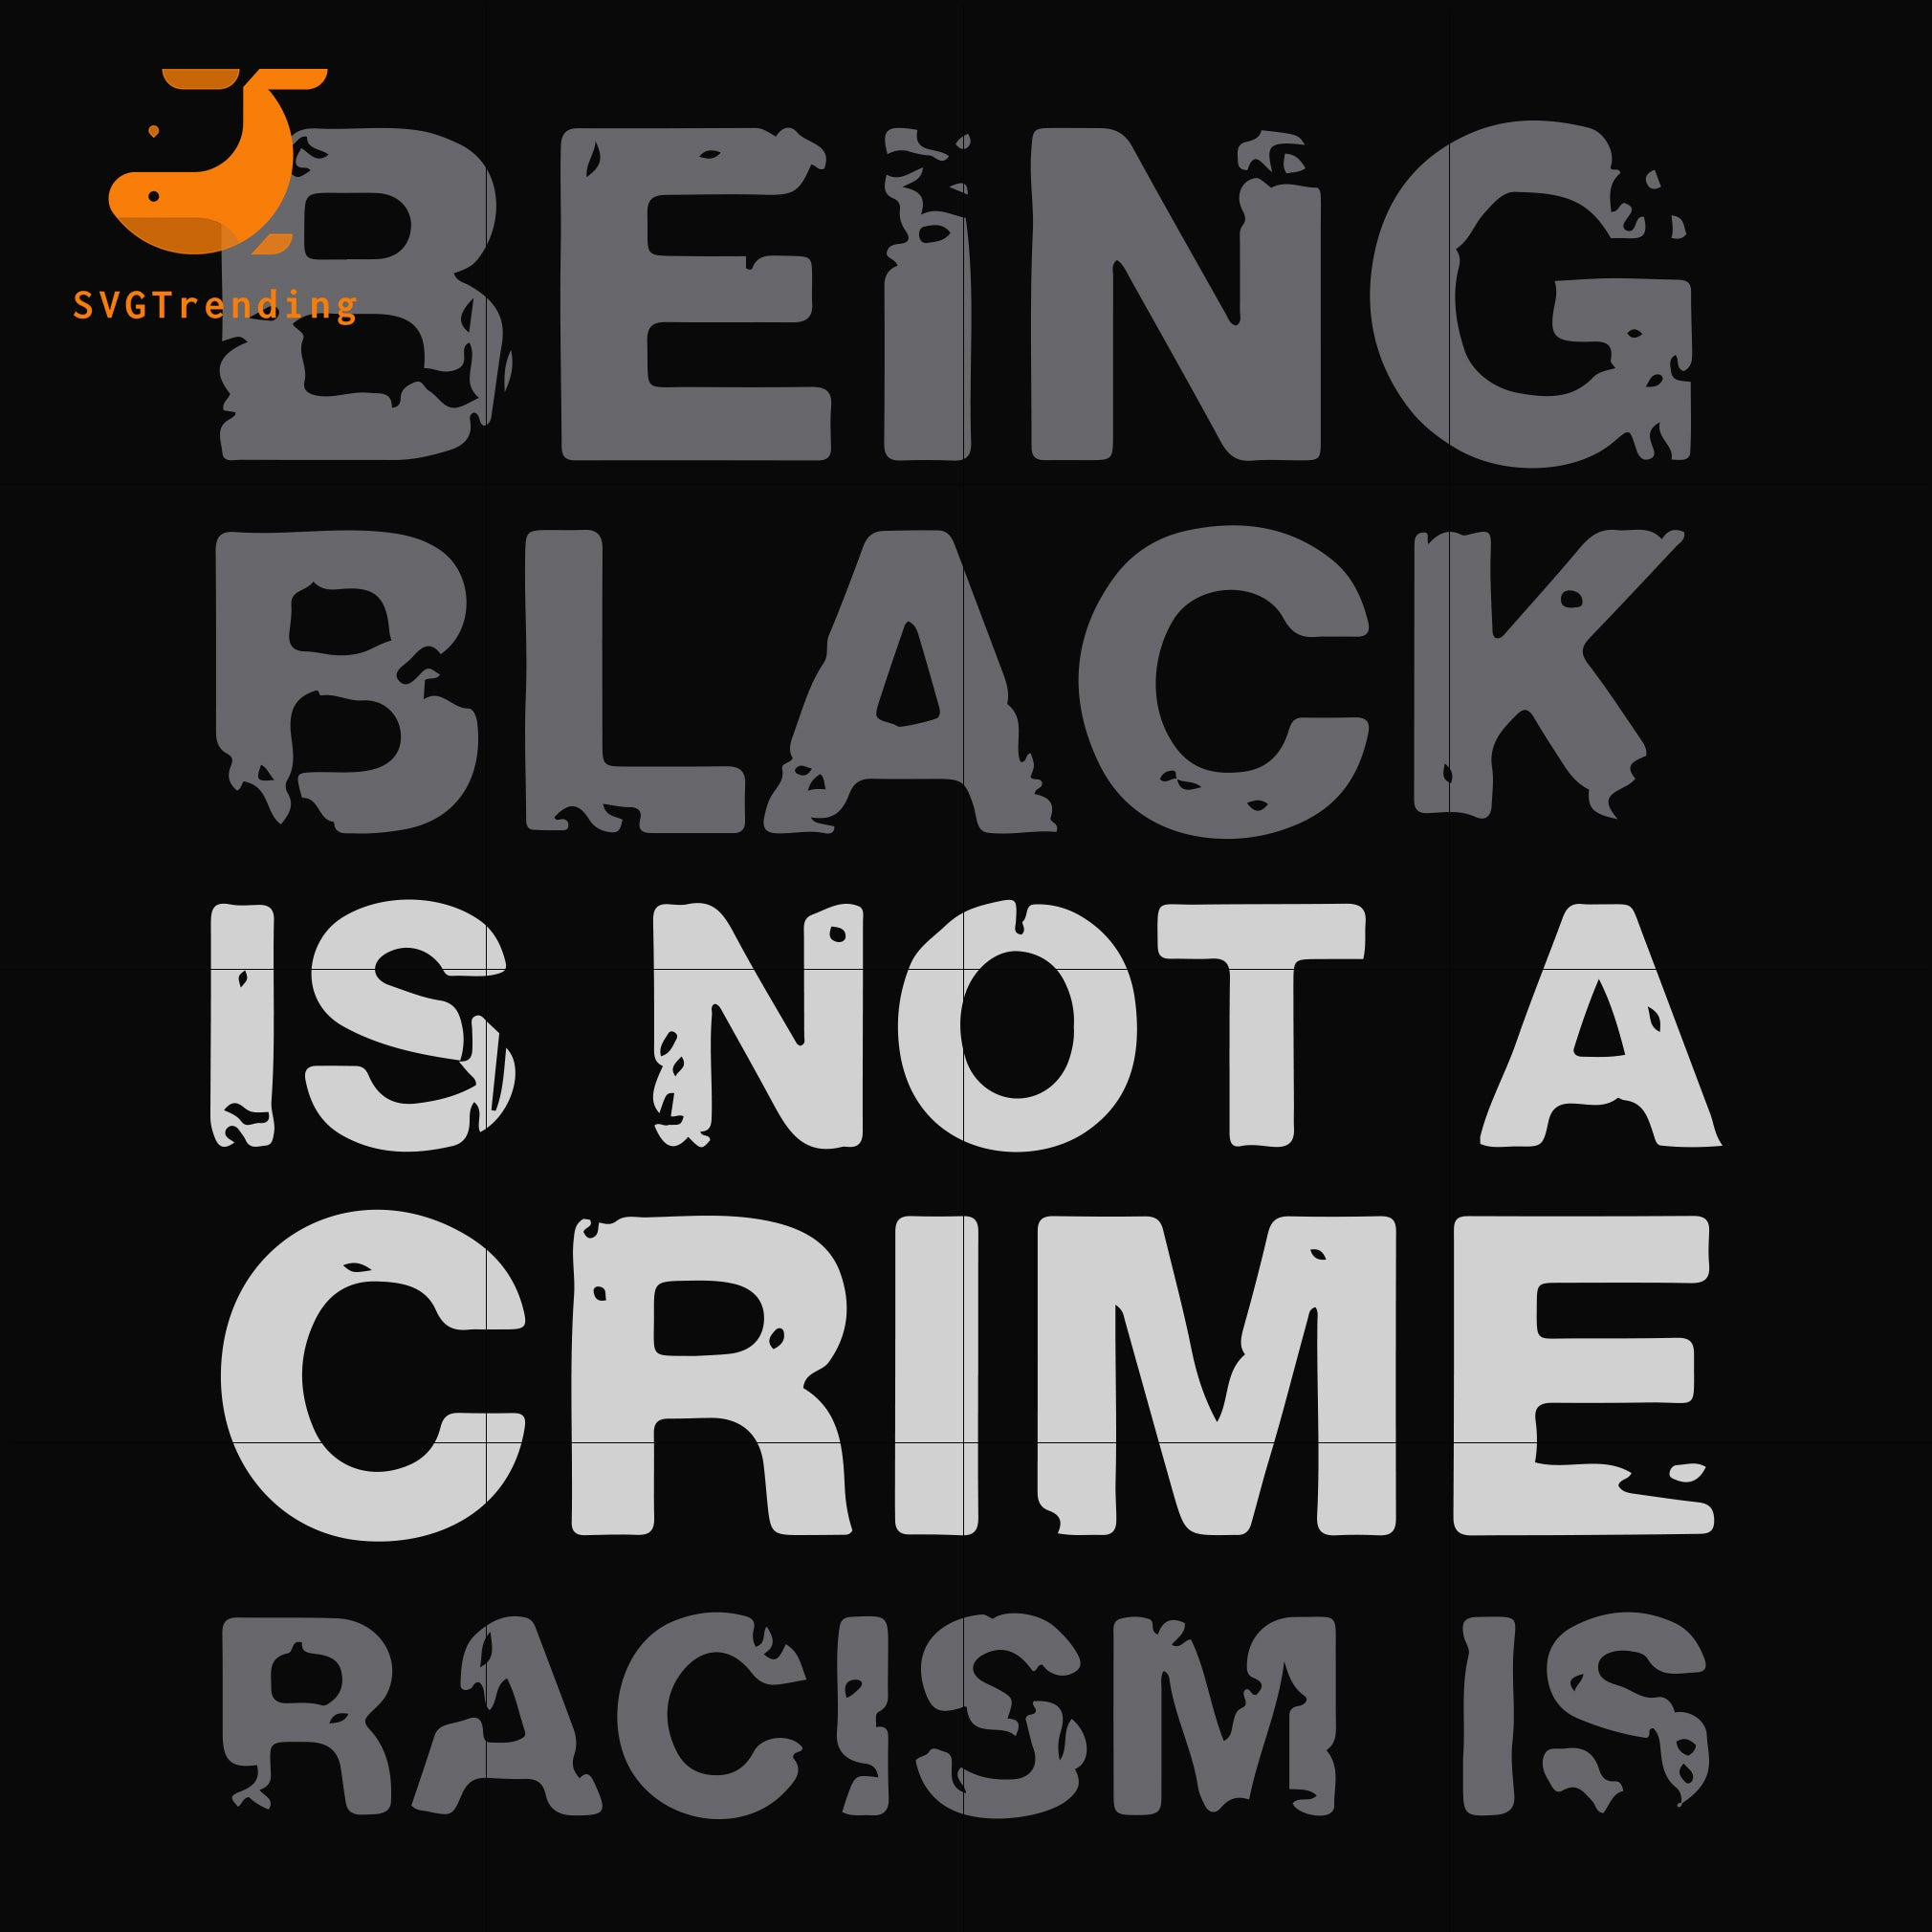 being black is not a crime racism is svg, png, dxf, eps digital file TD82